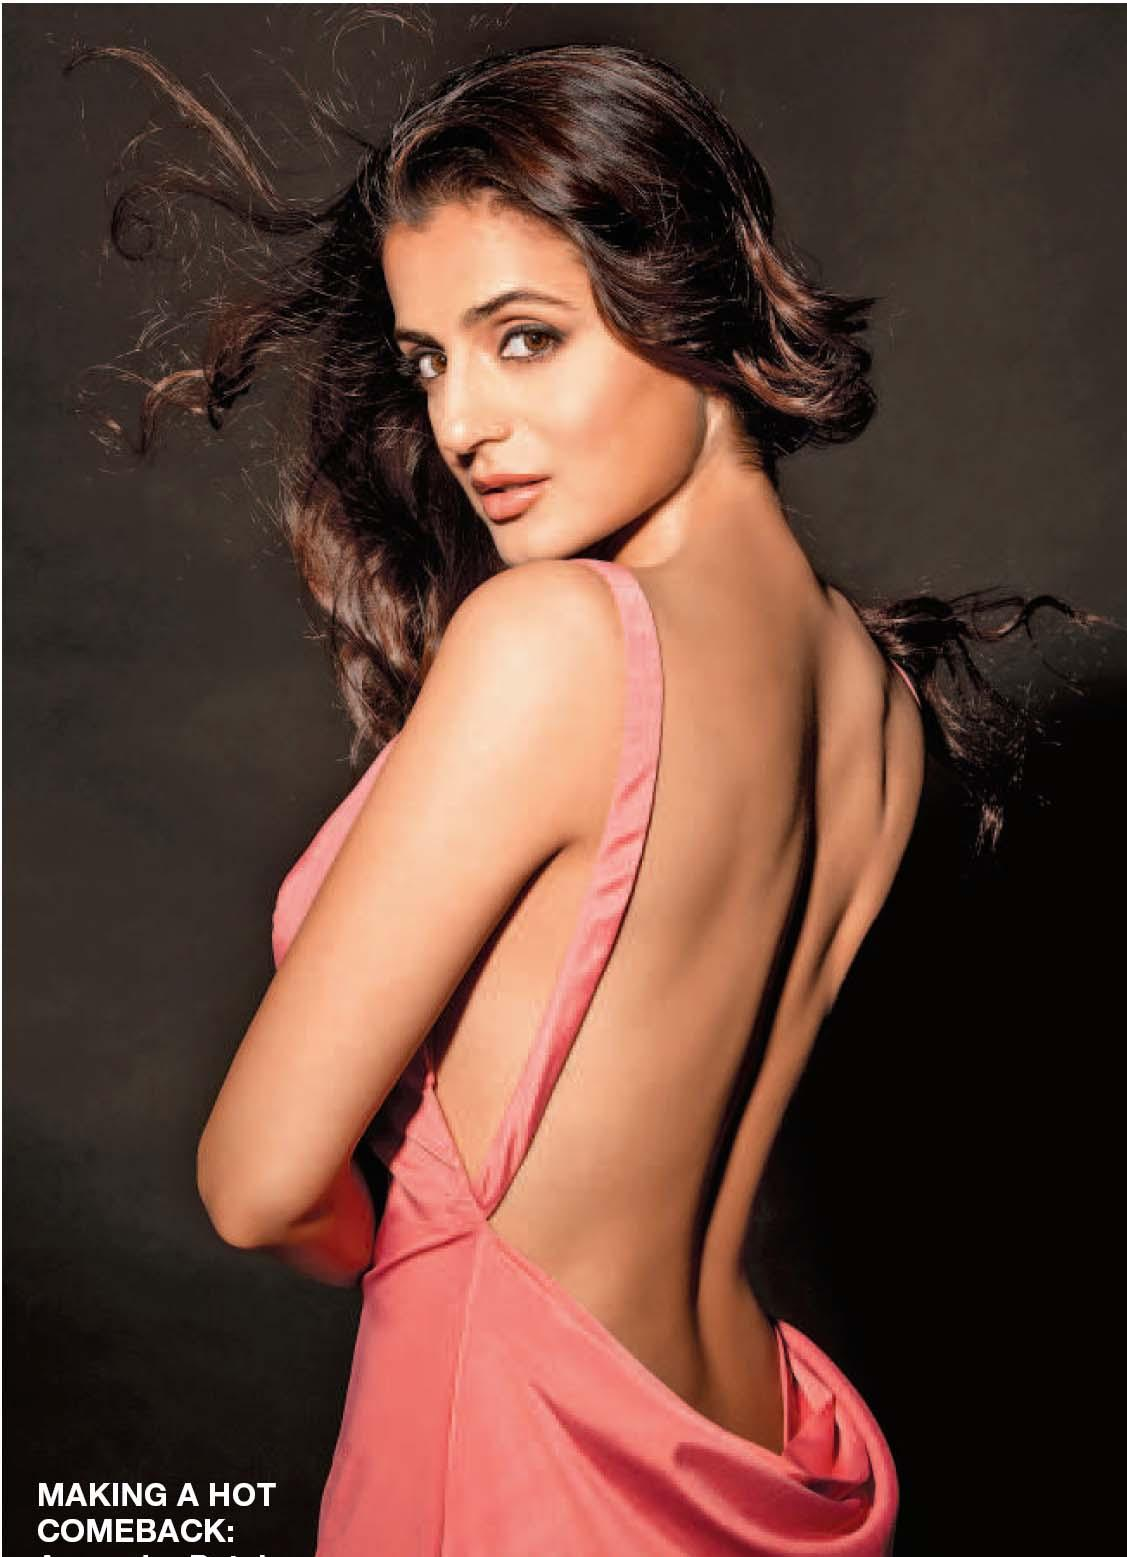 Amisha-patel Backless photos, ameesha patel in backless gown, Amisha-patel hottest photos